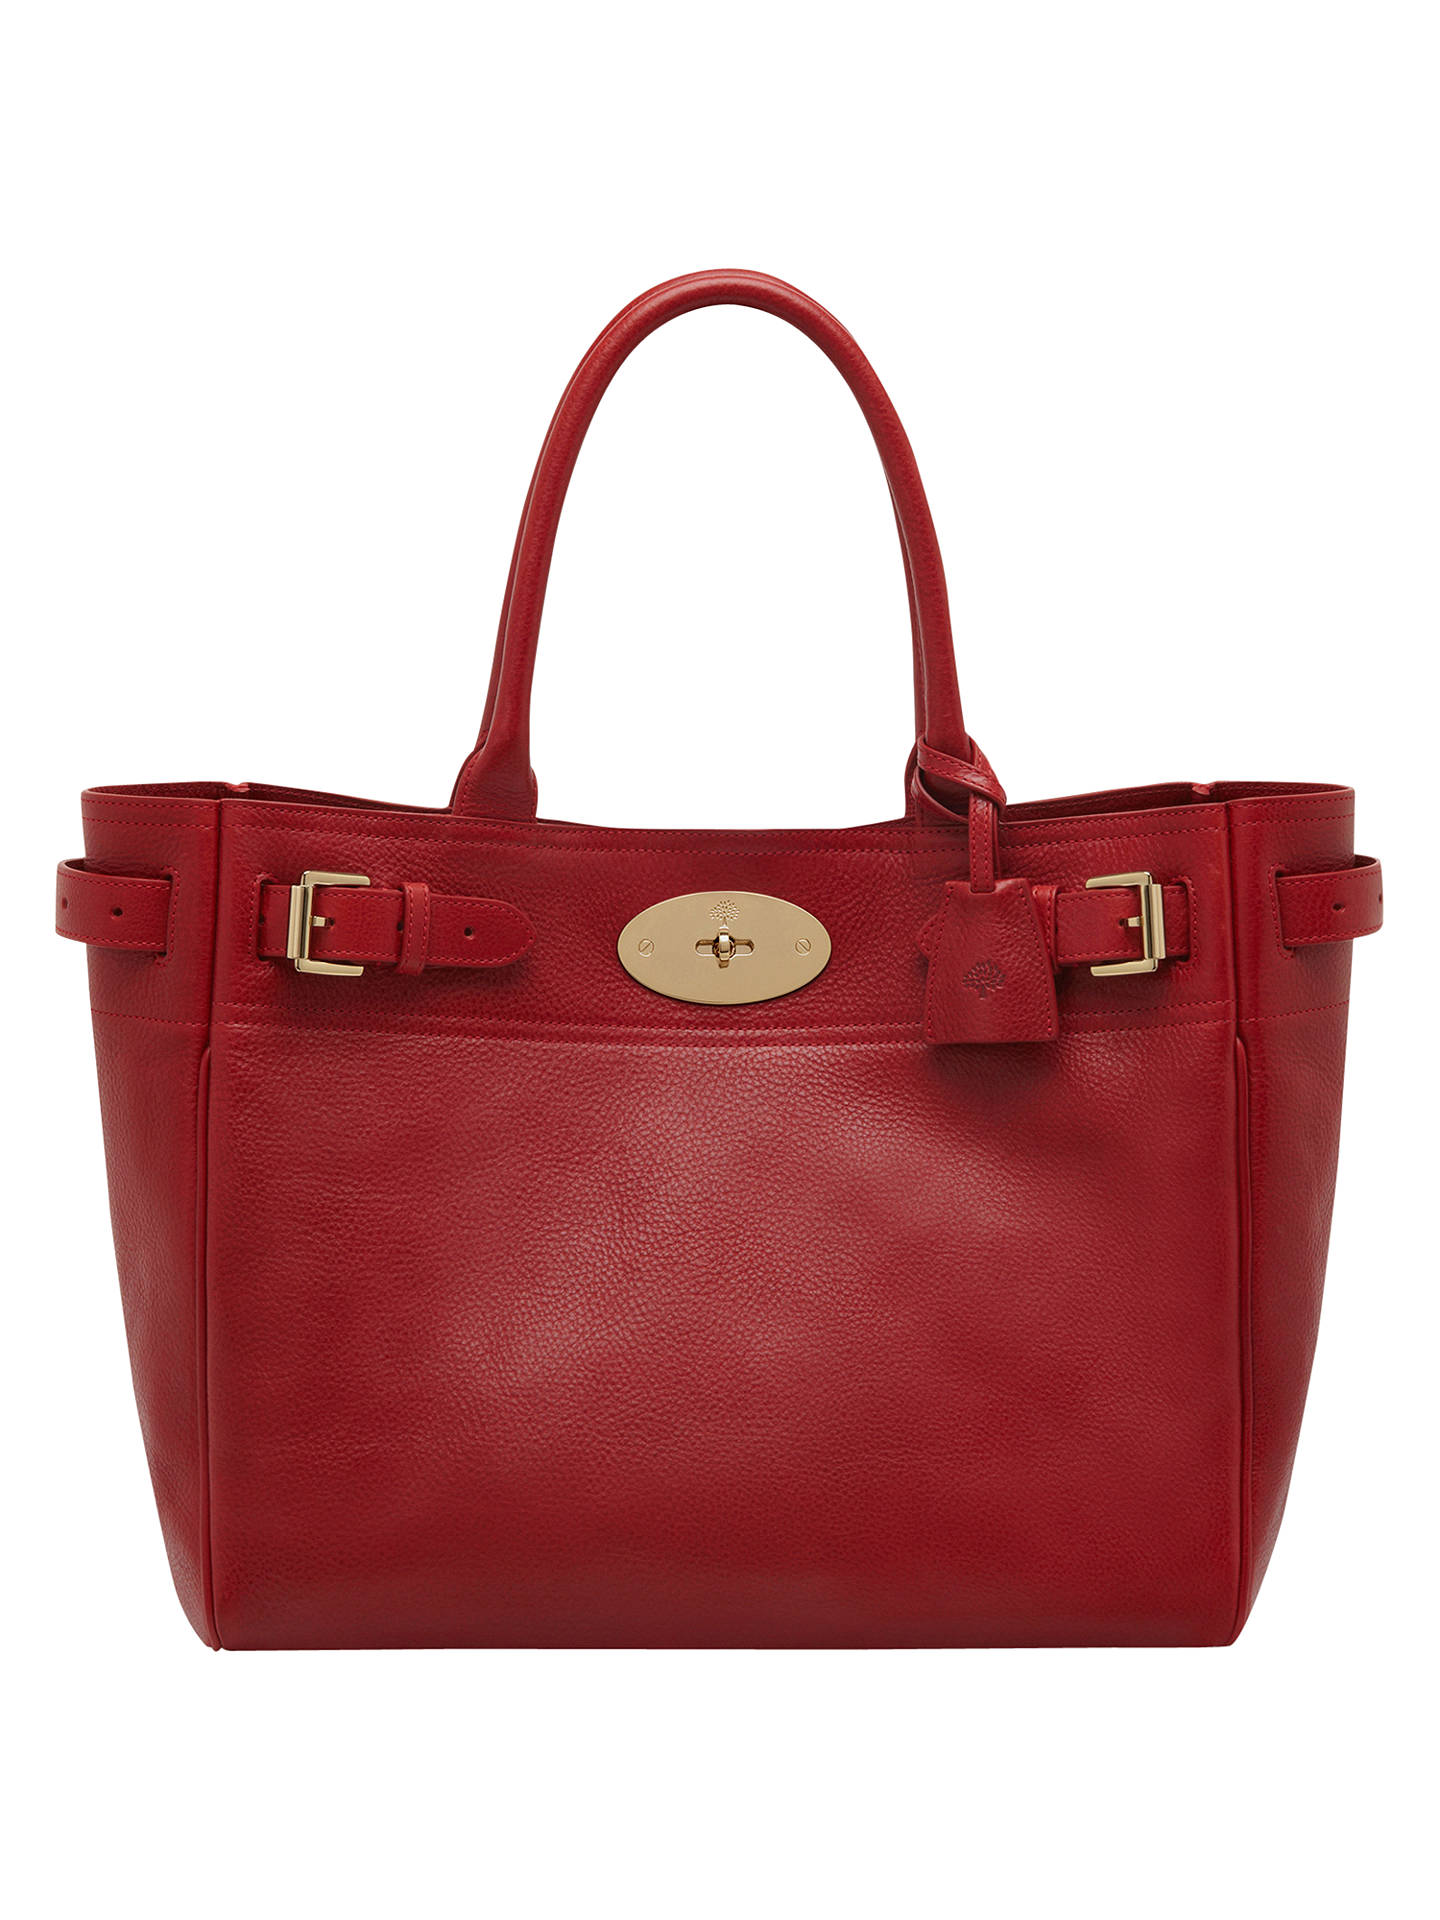 1152c8d0bbc BuyMulberry Bayswater Leather Tote Bag, Poppy Online at johnlewis.com ...